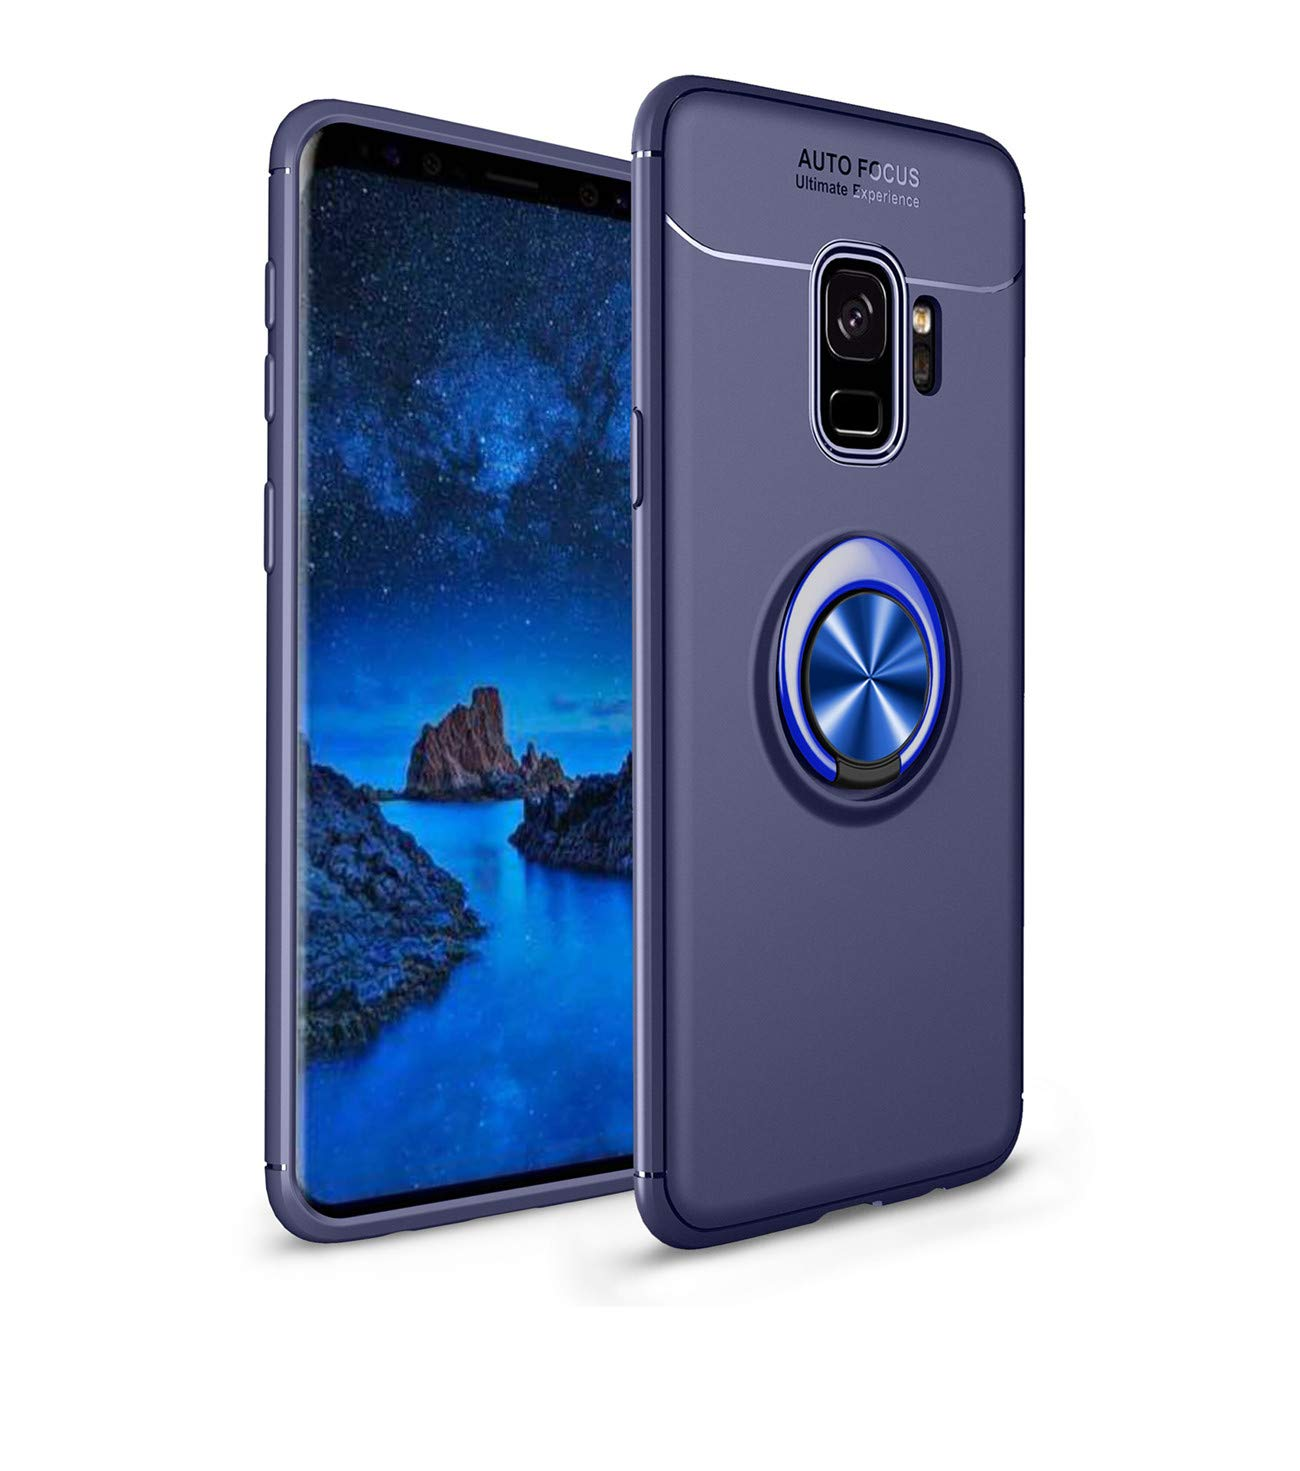 Heavy Armor Samsung Galaxy S9 Case Ring Holder Kickstand Magnetic Base Dual Layer Car Mount Rotable Dual Layer Protective Silicone Shell TPU Back Samsung Galaxy S9 Plus (6, Samsung Galaxy S9 Plus)